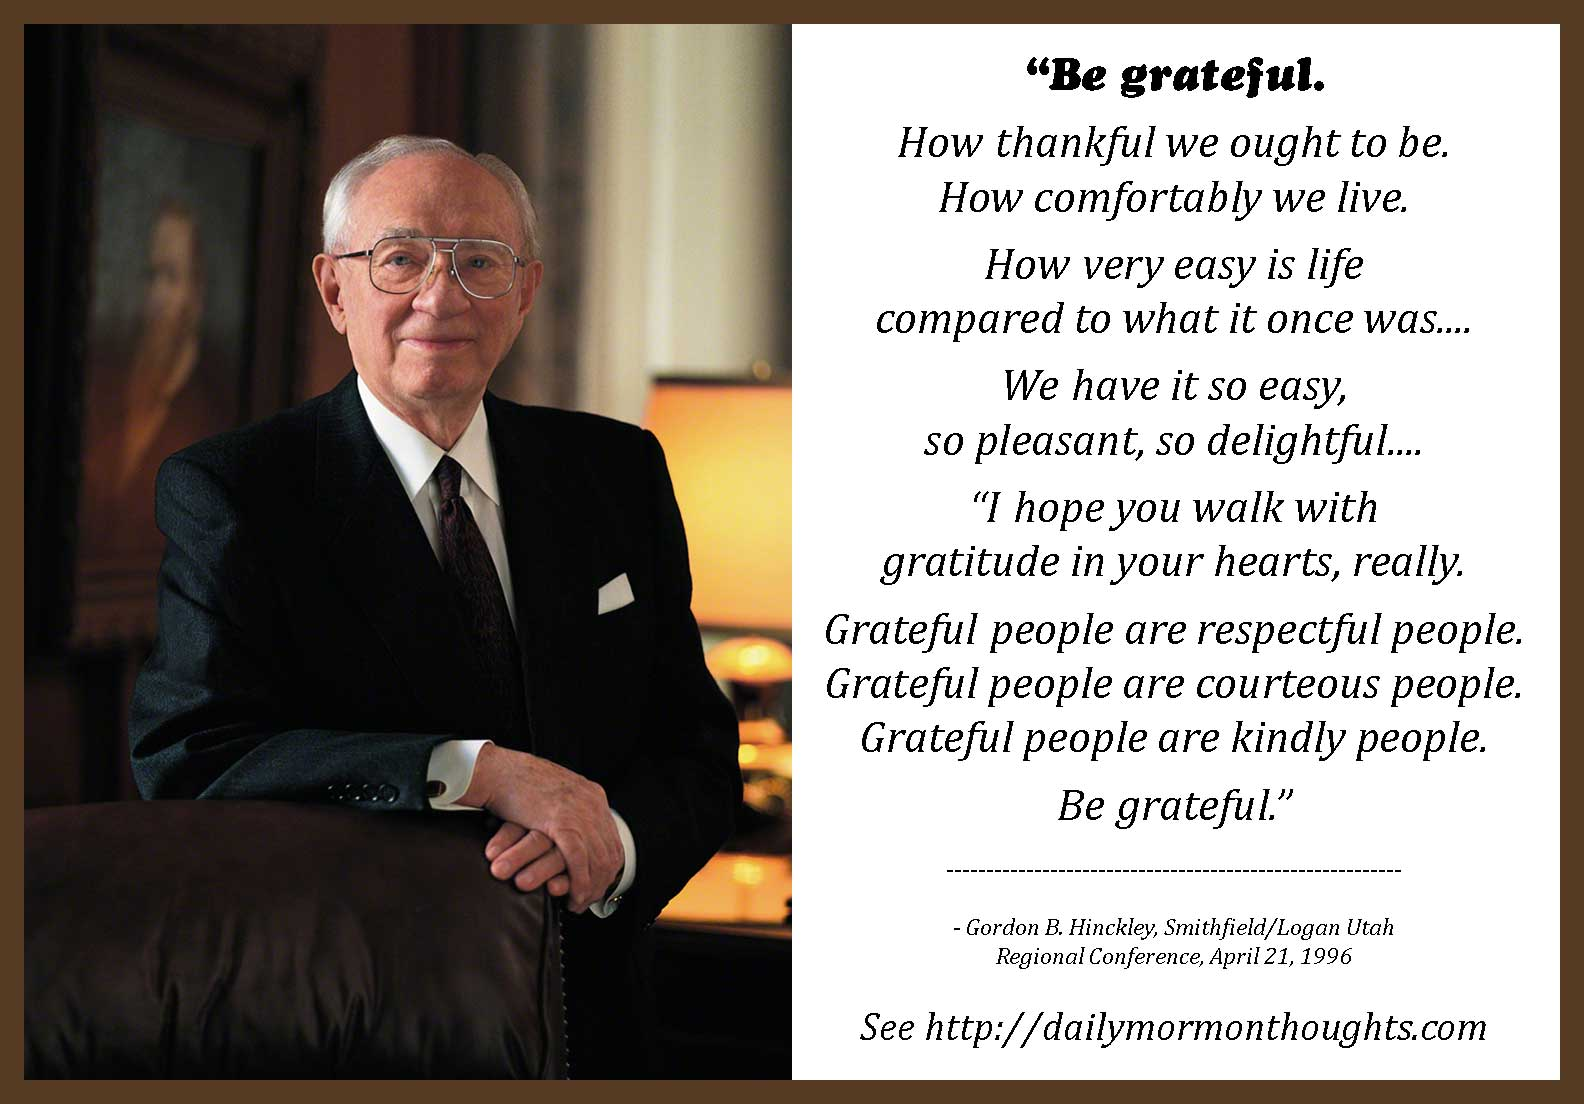 Daily Thought From Modern Prophets Gordon B Hinckley On Gratitude For Life